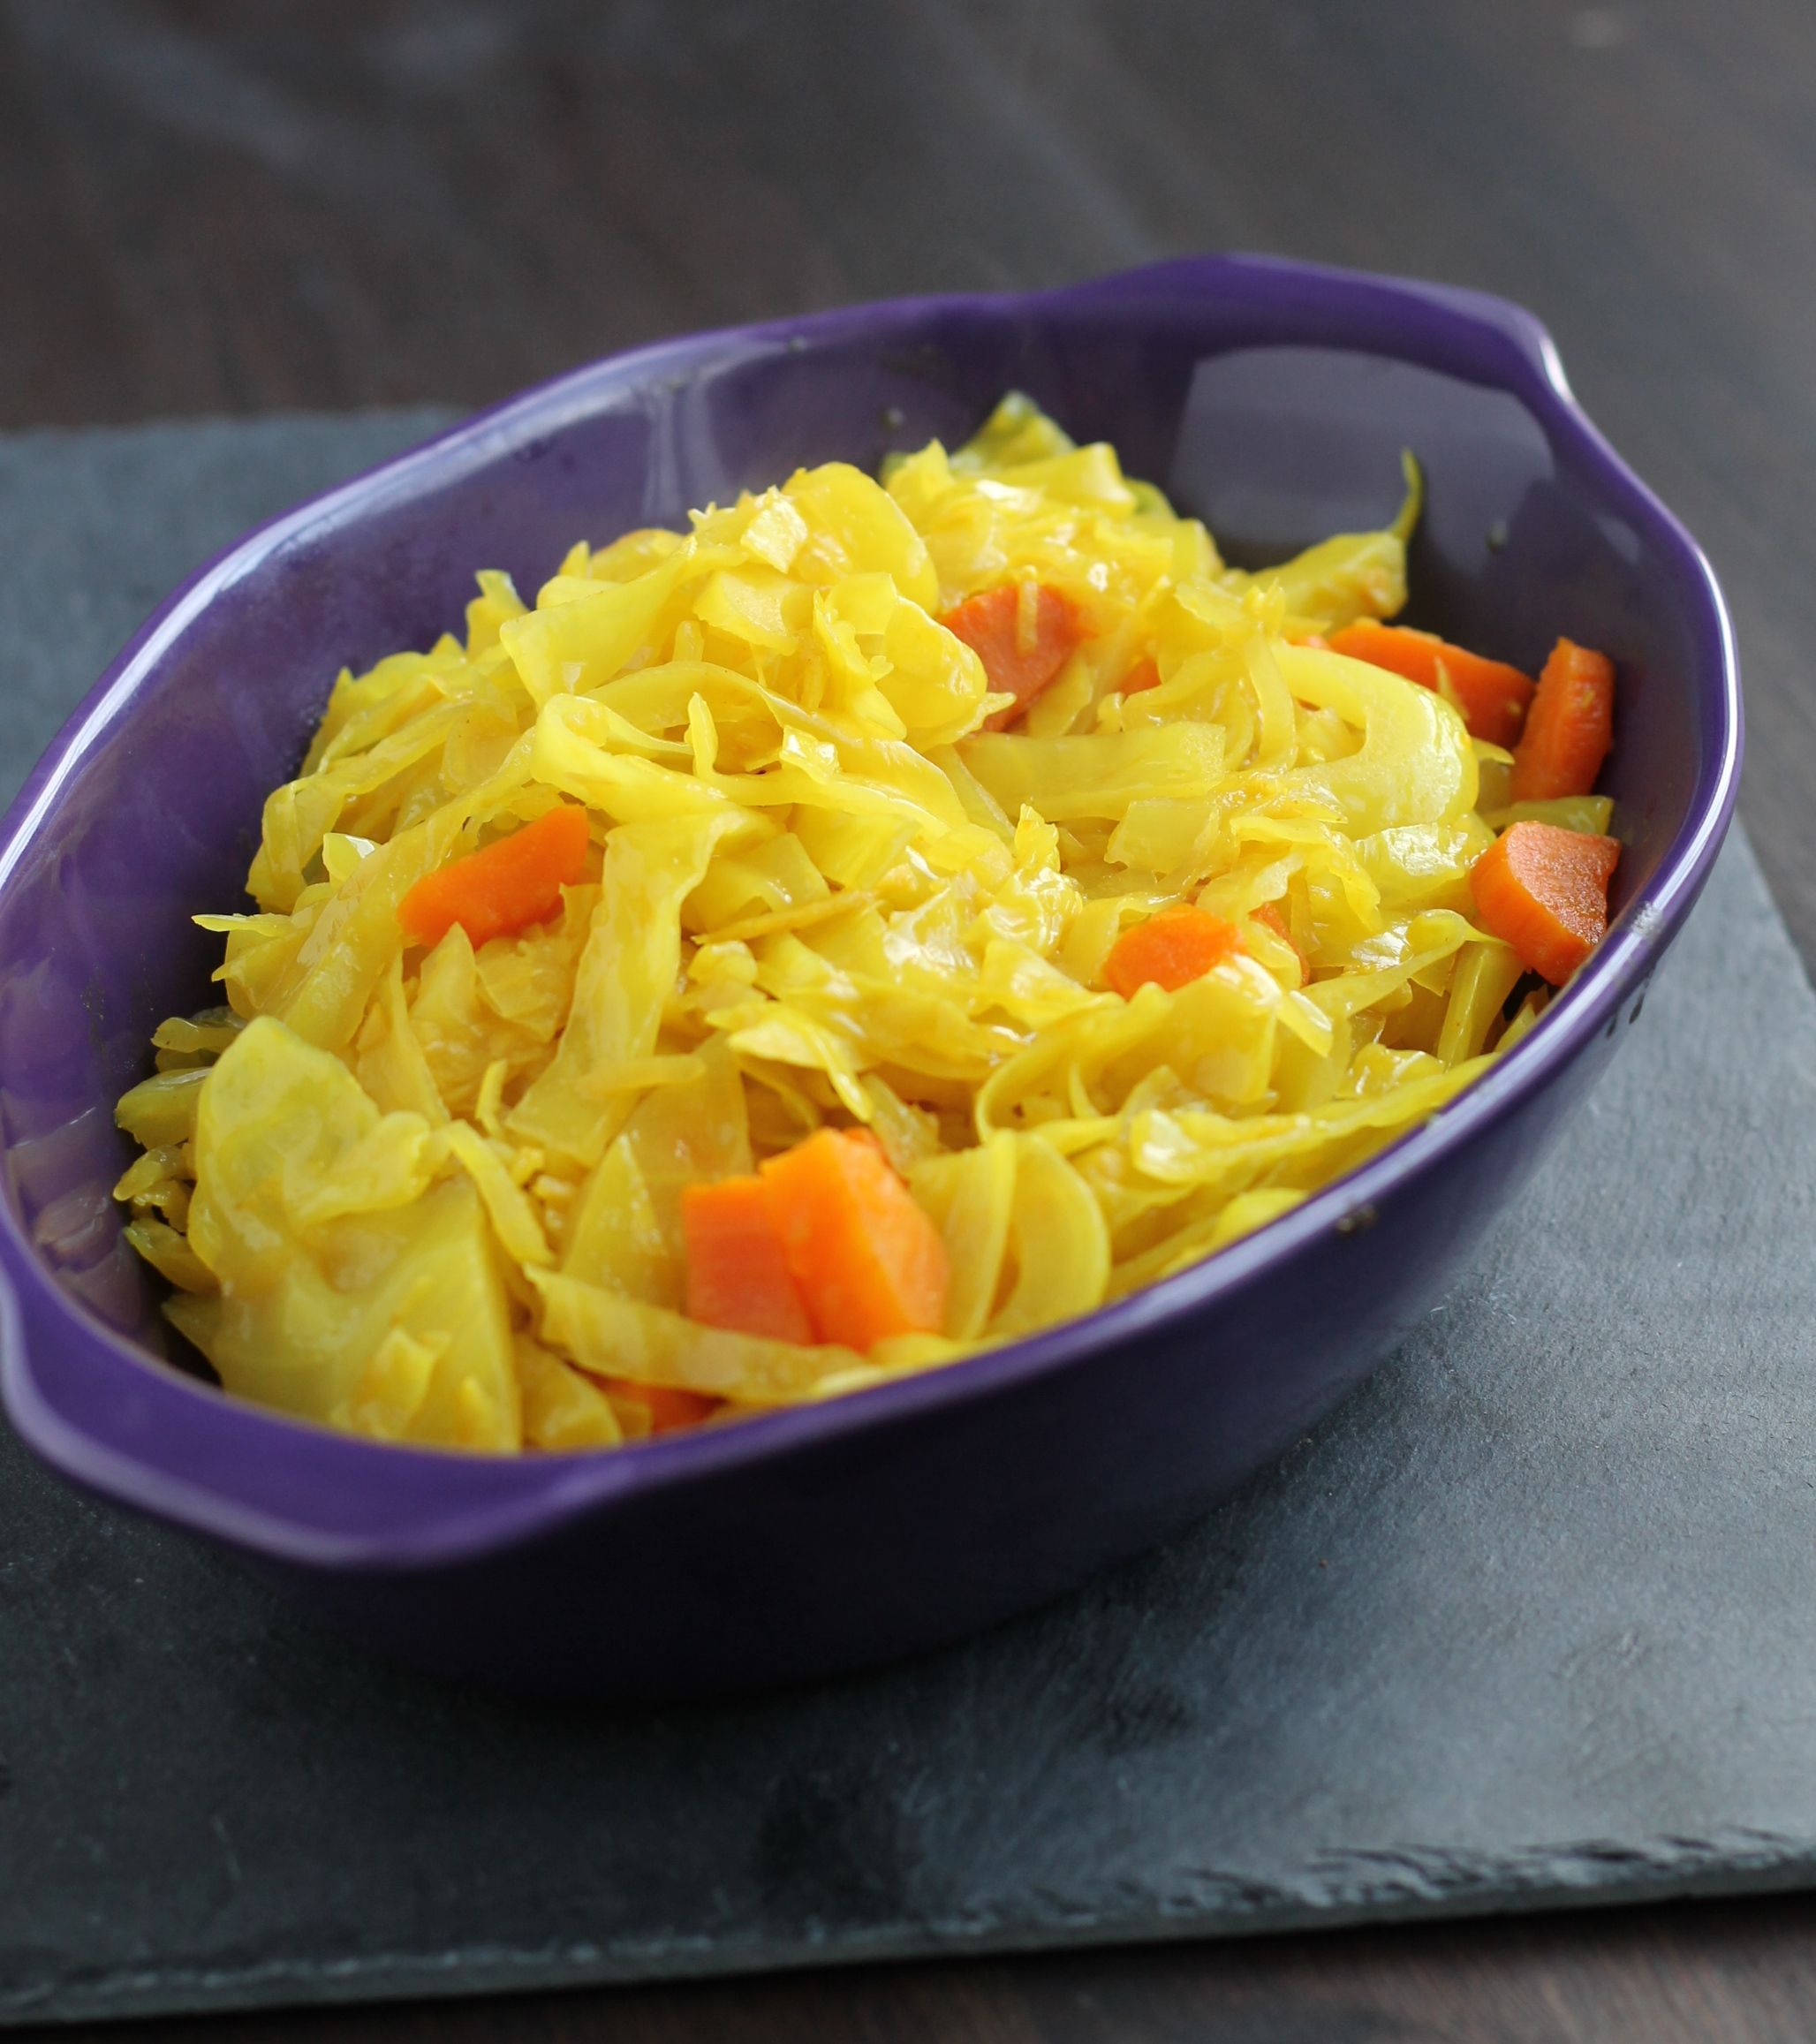 spiced cabbage and carrots